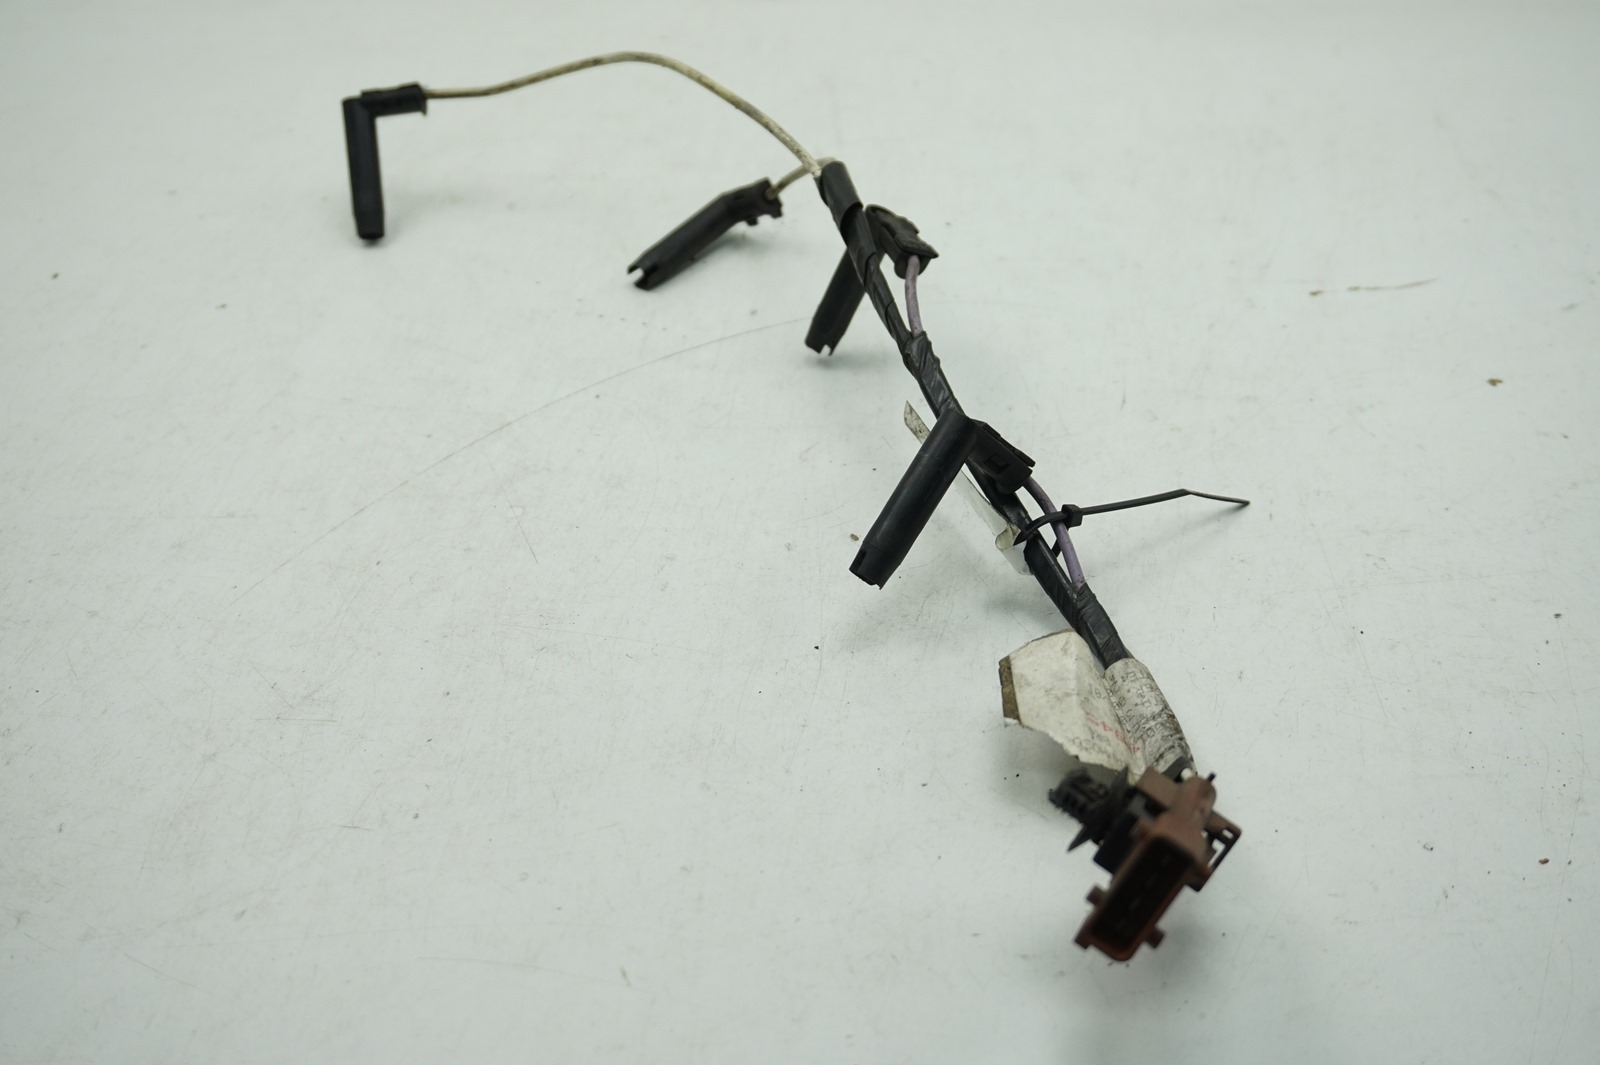 Engine Wiring System 8200019845 1 9 Dci Renault Scenic